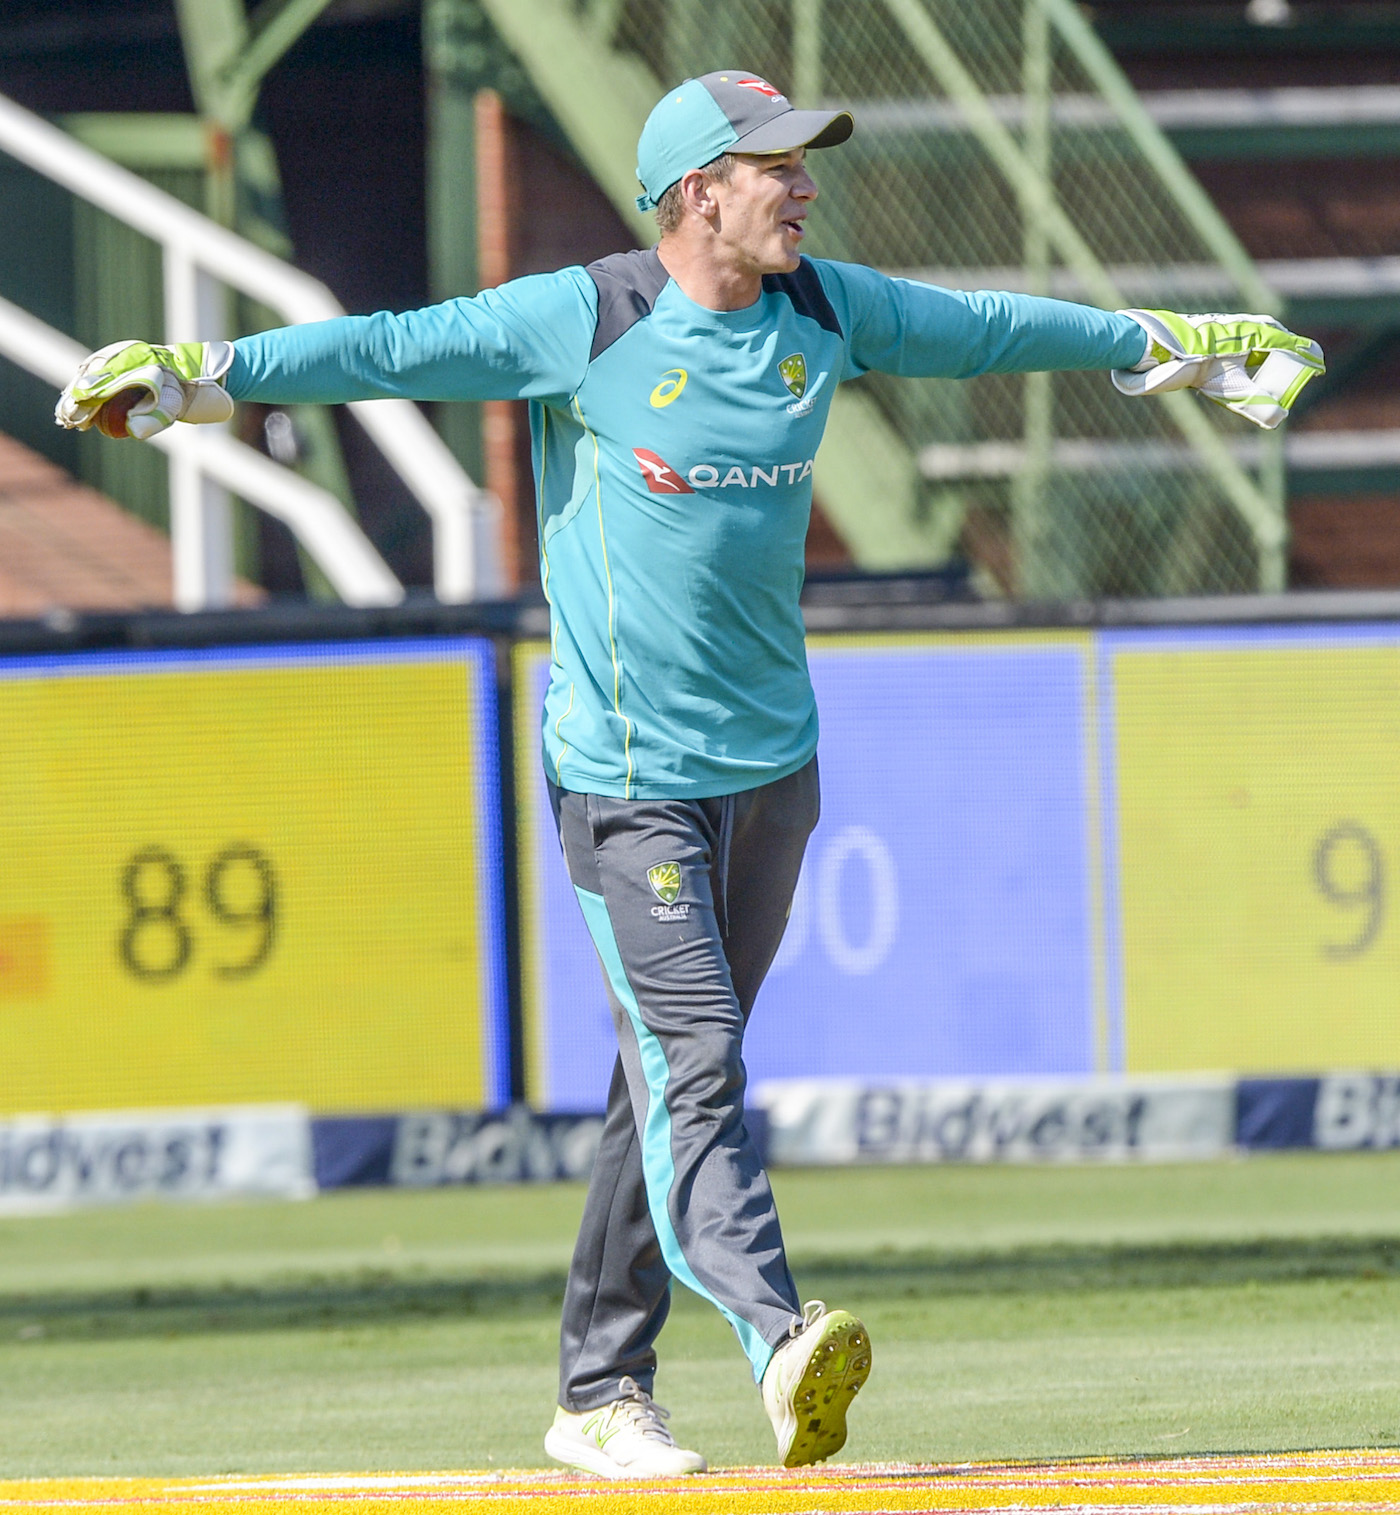 ENG vs AUS 2018: England Series is a Great Opportunity to Move On - Tim Paine